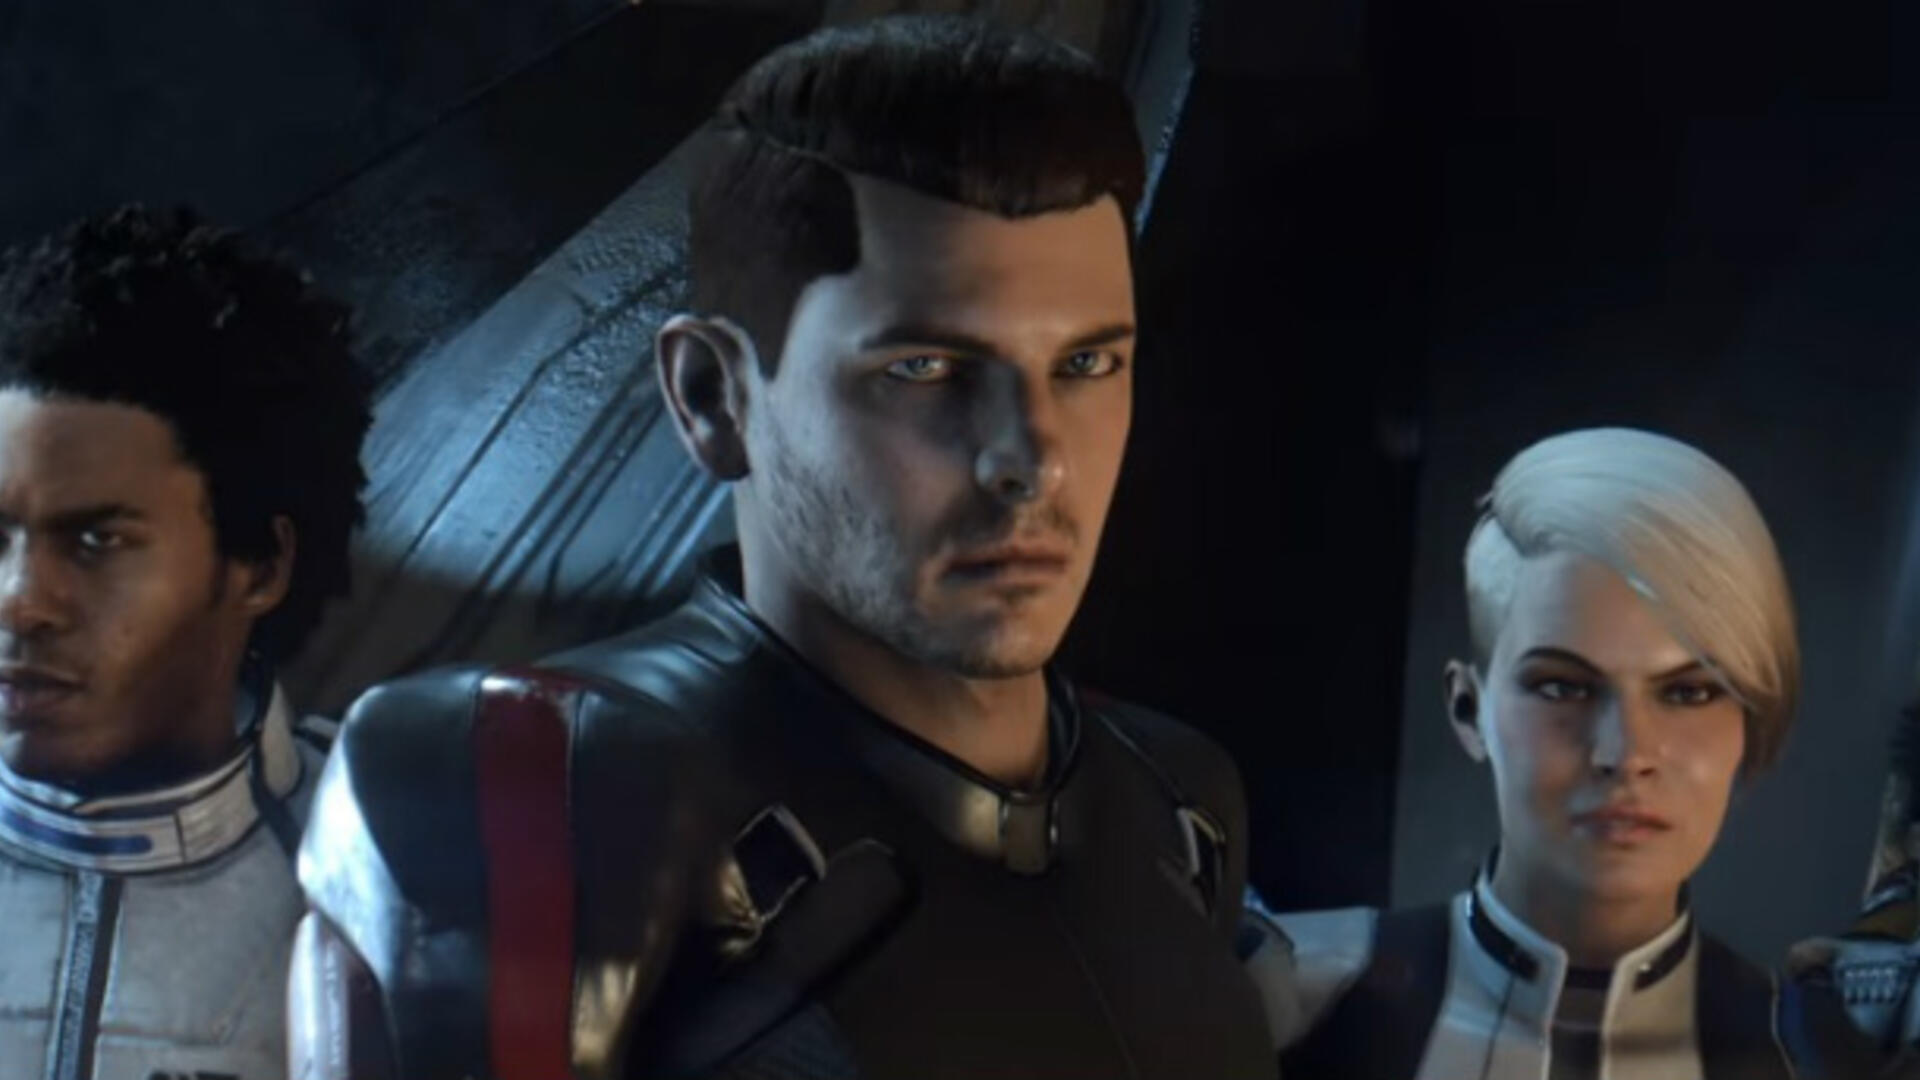 Mass Effect Andromeda Trailers Show Off Your Pathfinder Squad